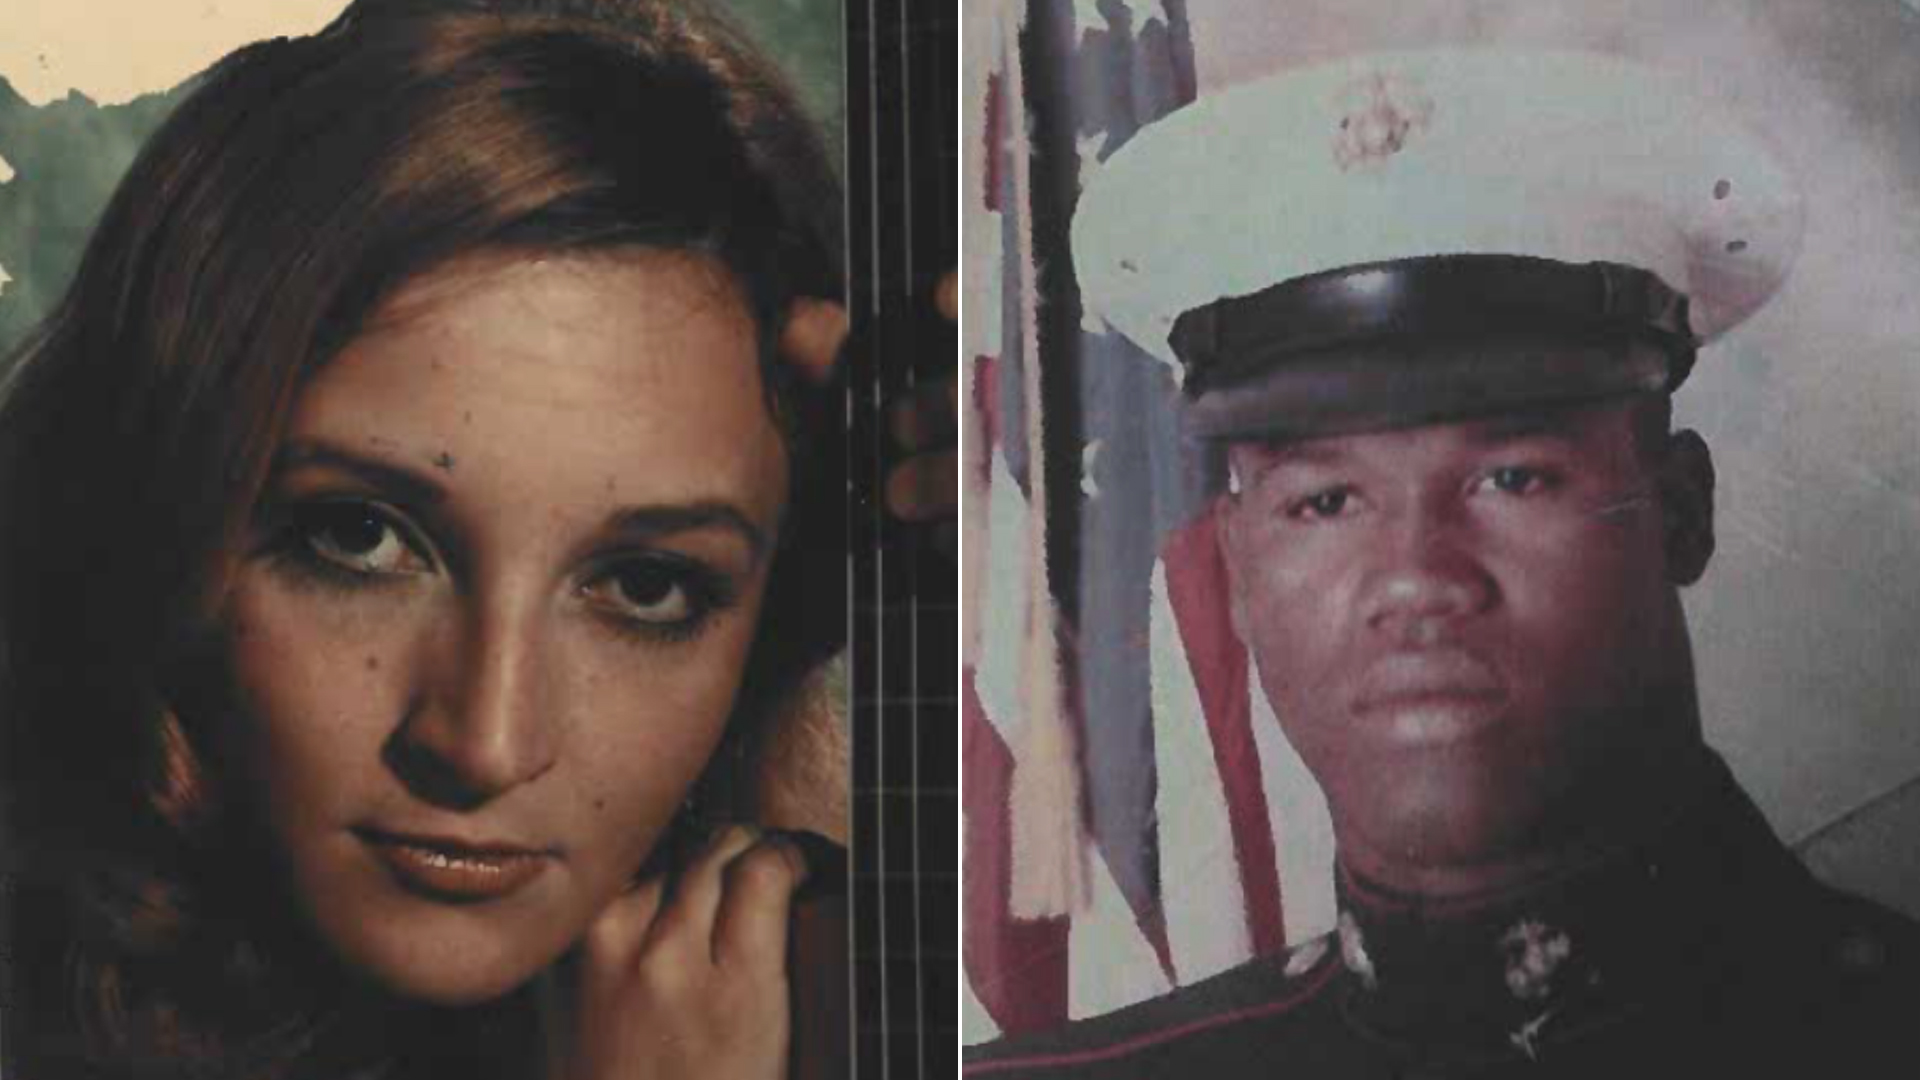 Leslie Penrod Harris, left, and Eddie Lee Anderson are seen in photos from 1976 released by the Orange County Sheriff's Department.